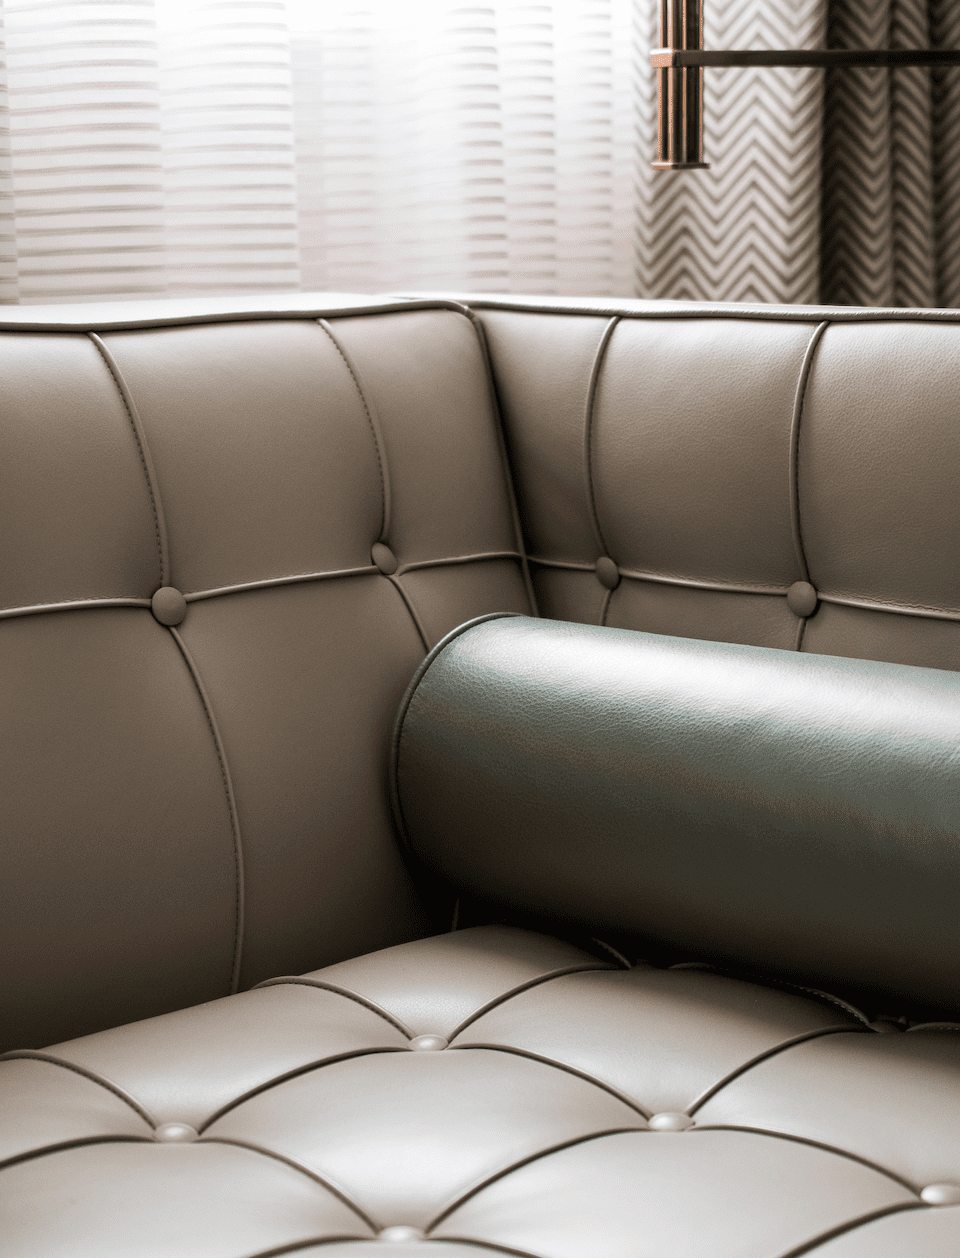 Corner of a leather sofa with cushions